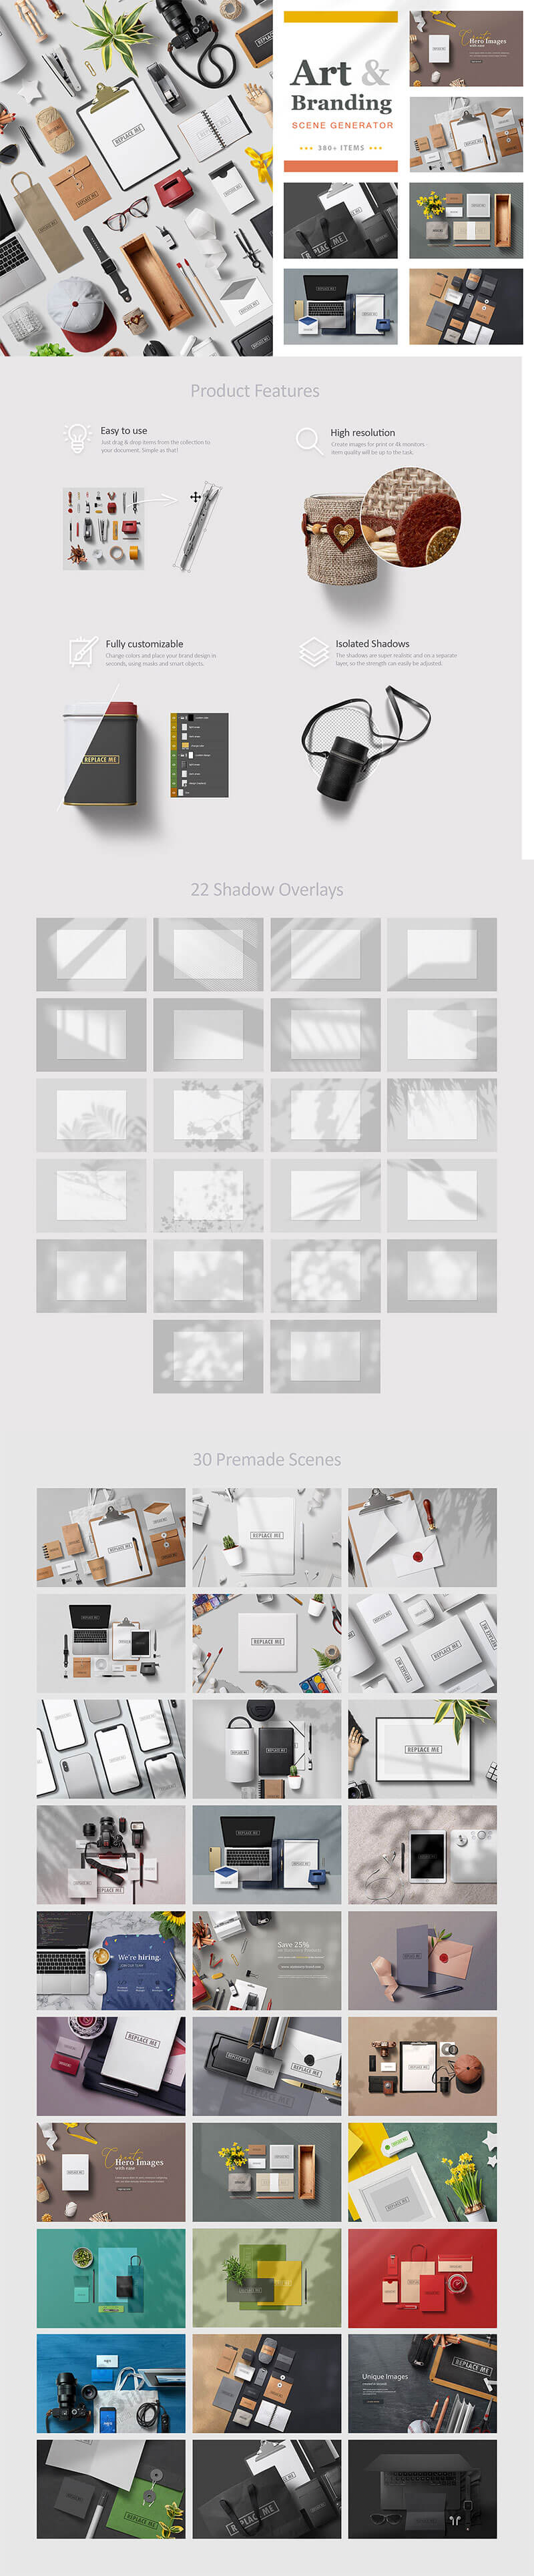 all-encompassing-mockup-collection-b-1